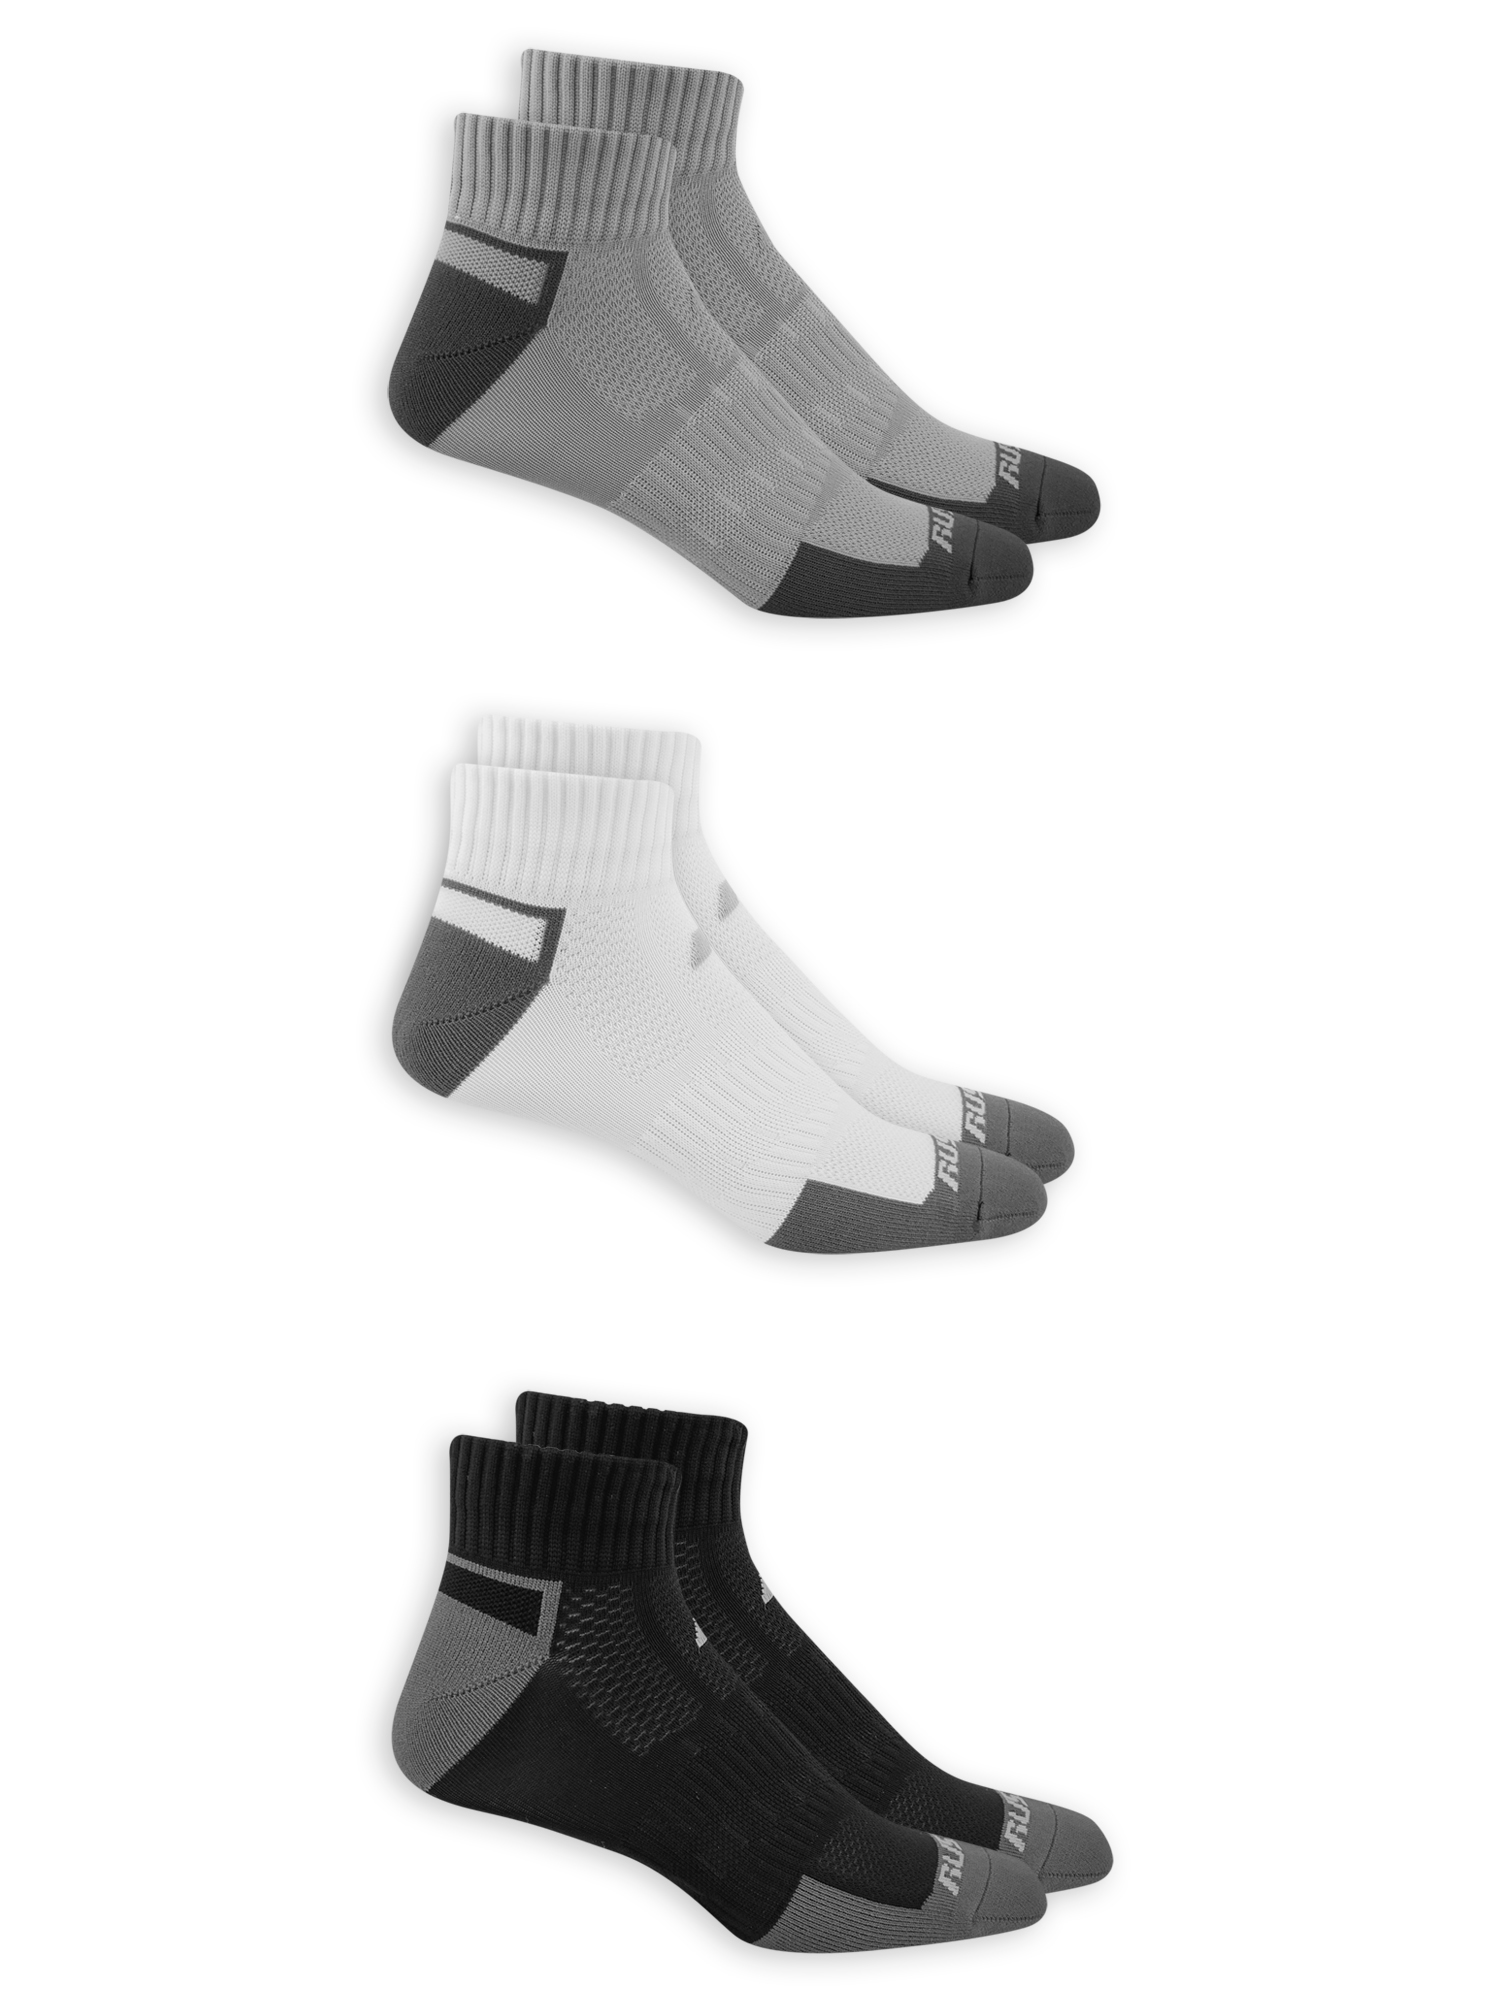 Performance Men's COOLFORCE Zone Cushion Low Cut Socks 3 Pack